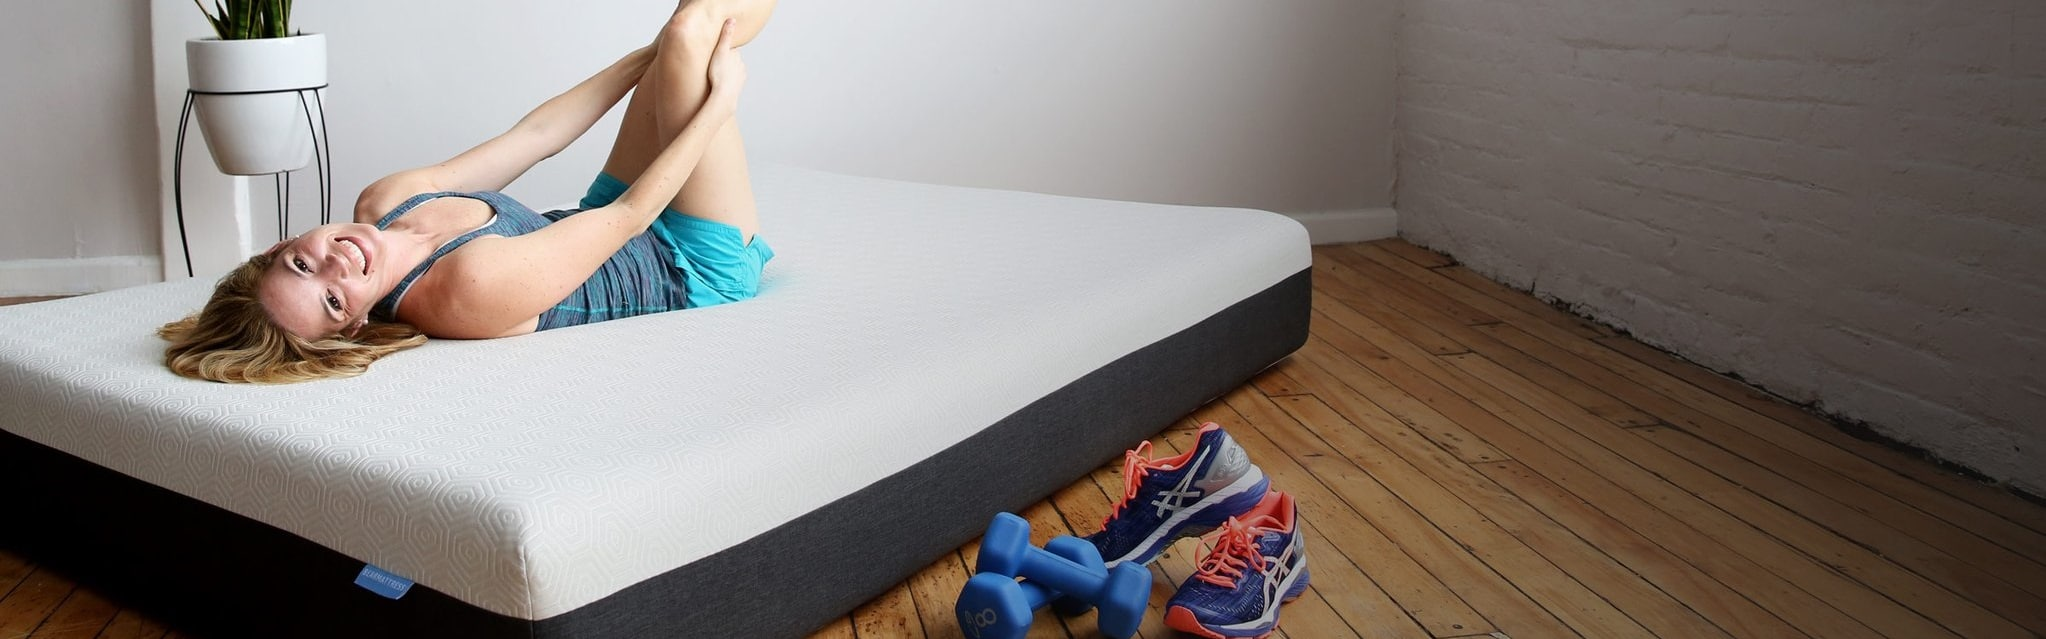 Best Mattresses for Athletes Reviewed in Detail